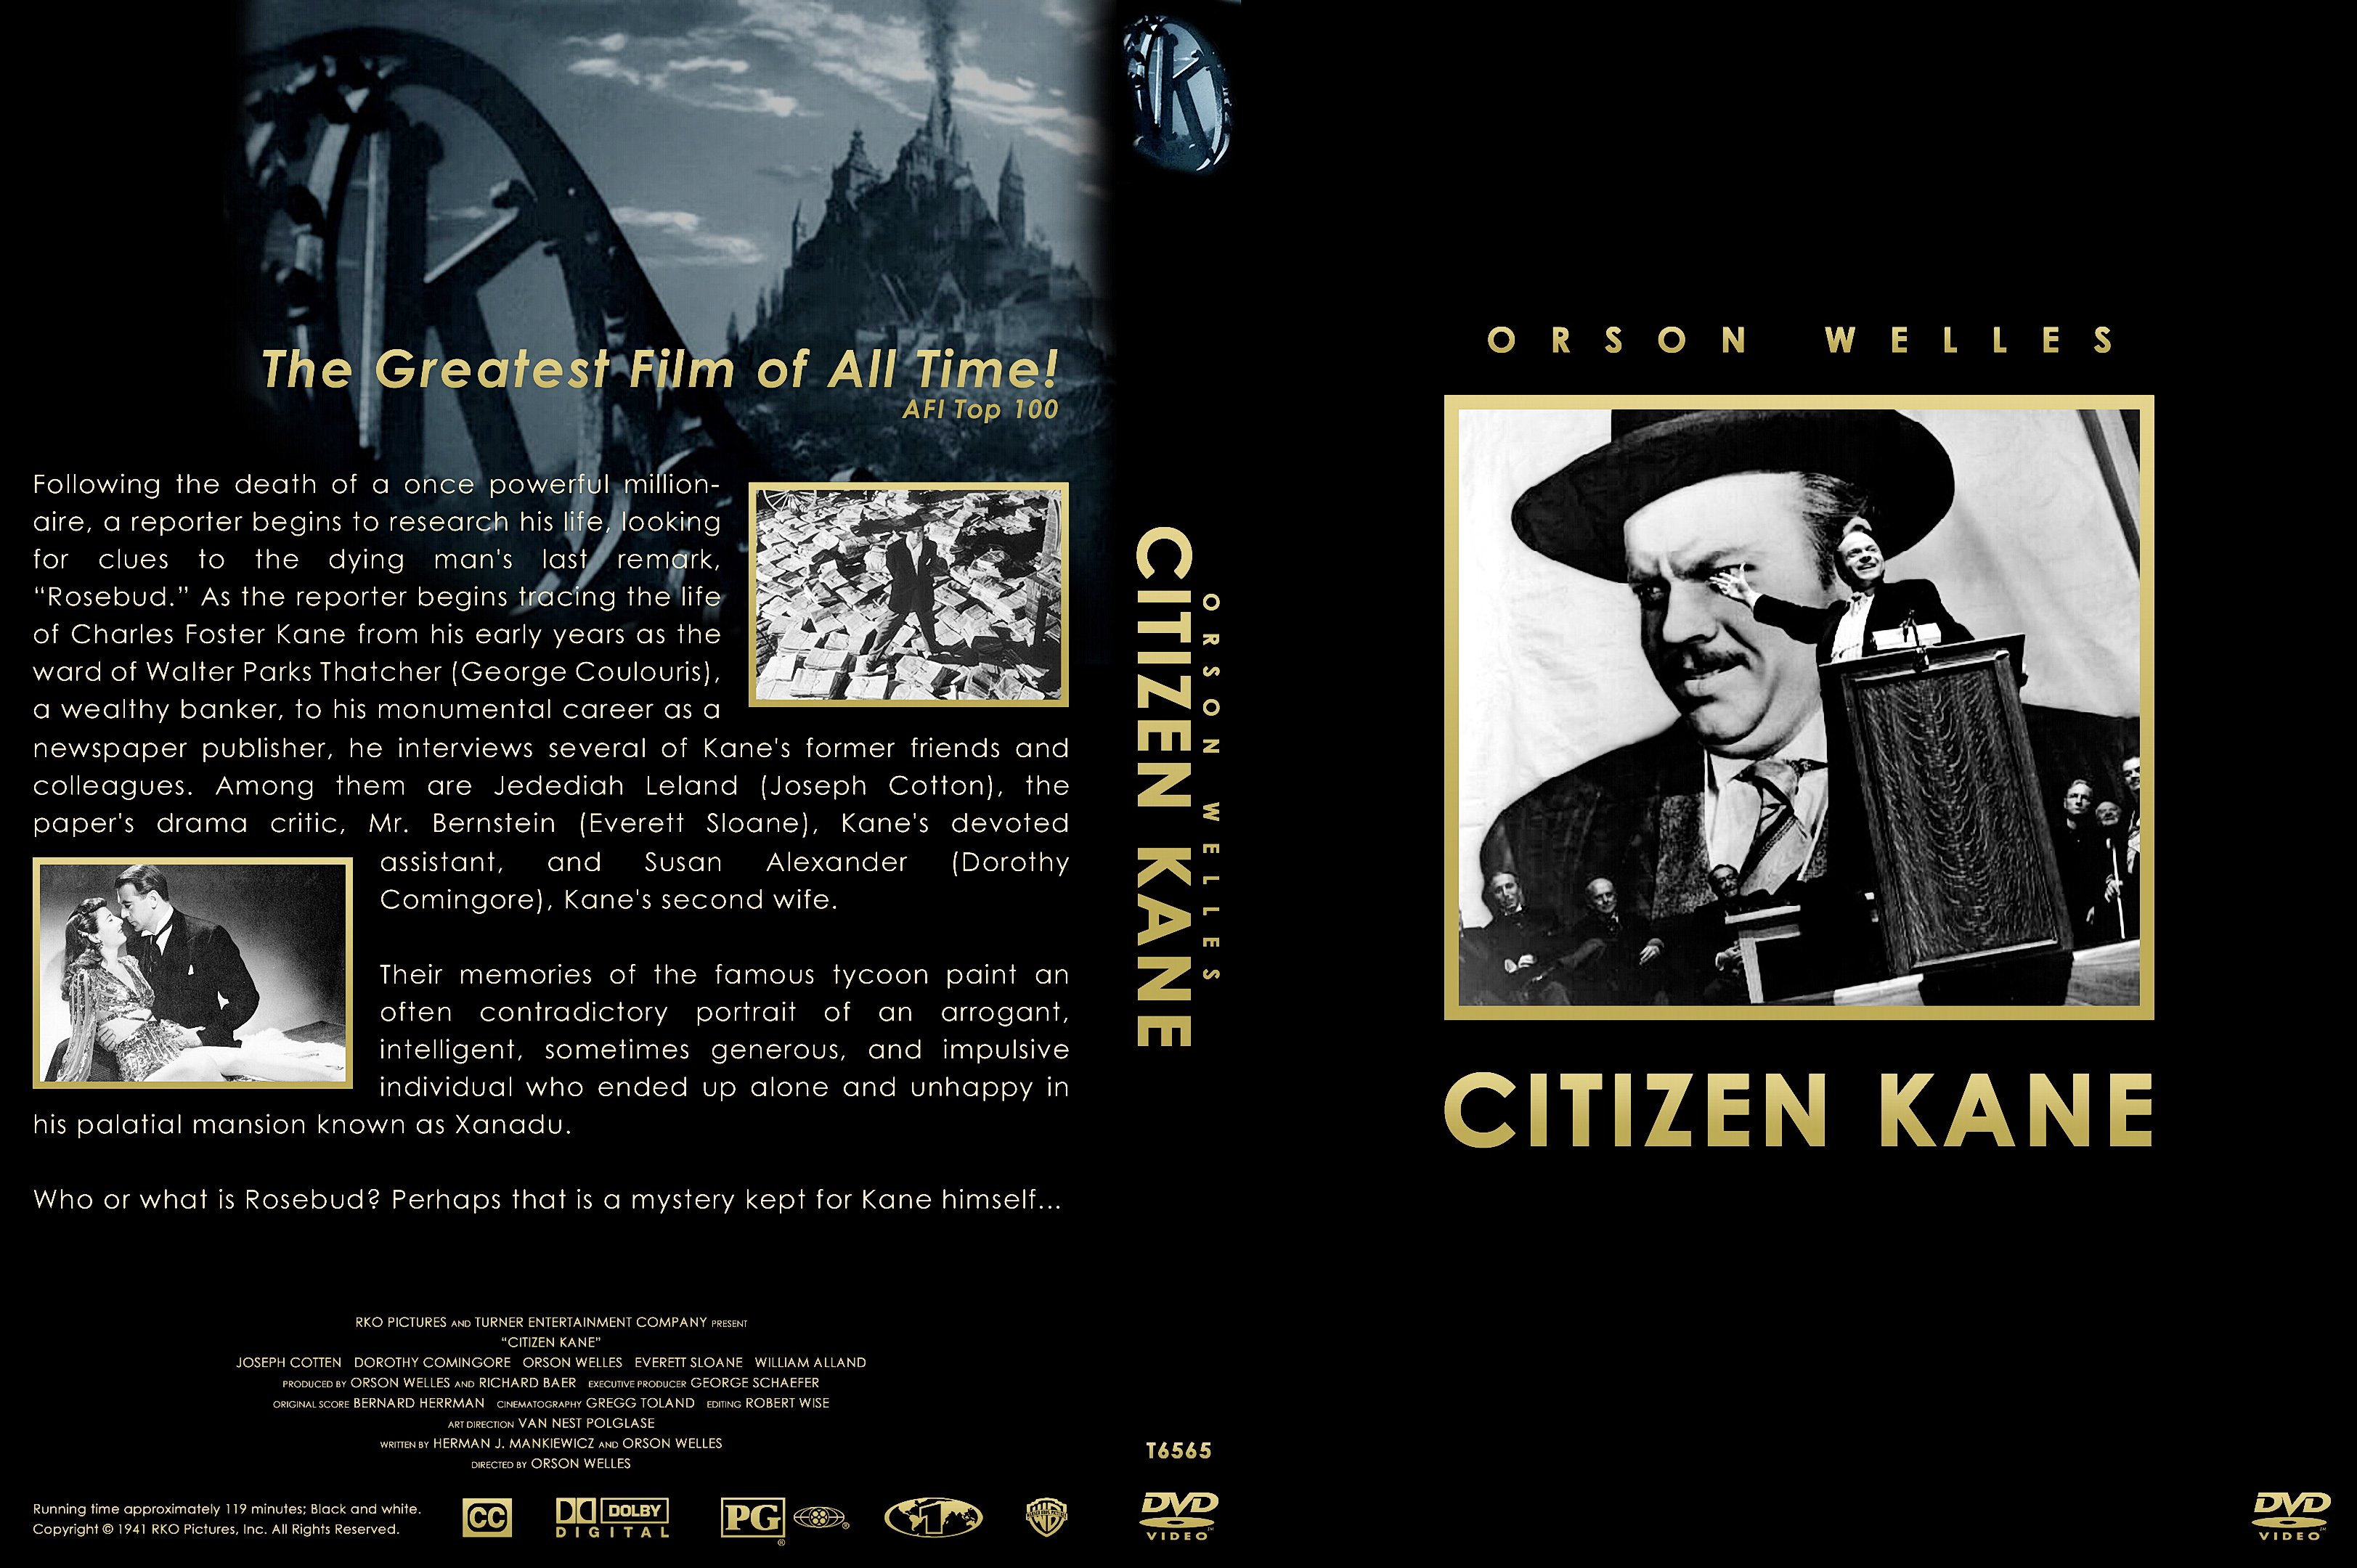 an analysis of symbolism in citizen kane A summary of filmic elements in 's citizen kane analysis of major susan alexander kane themes, motifs, and symbols + film analysis the authorship controversy.